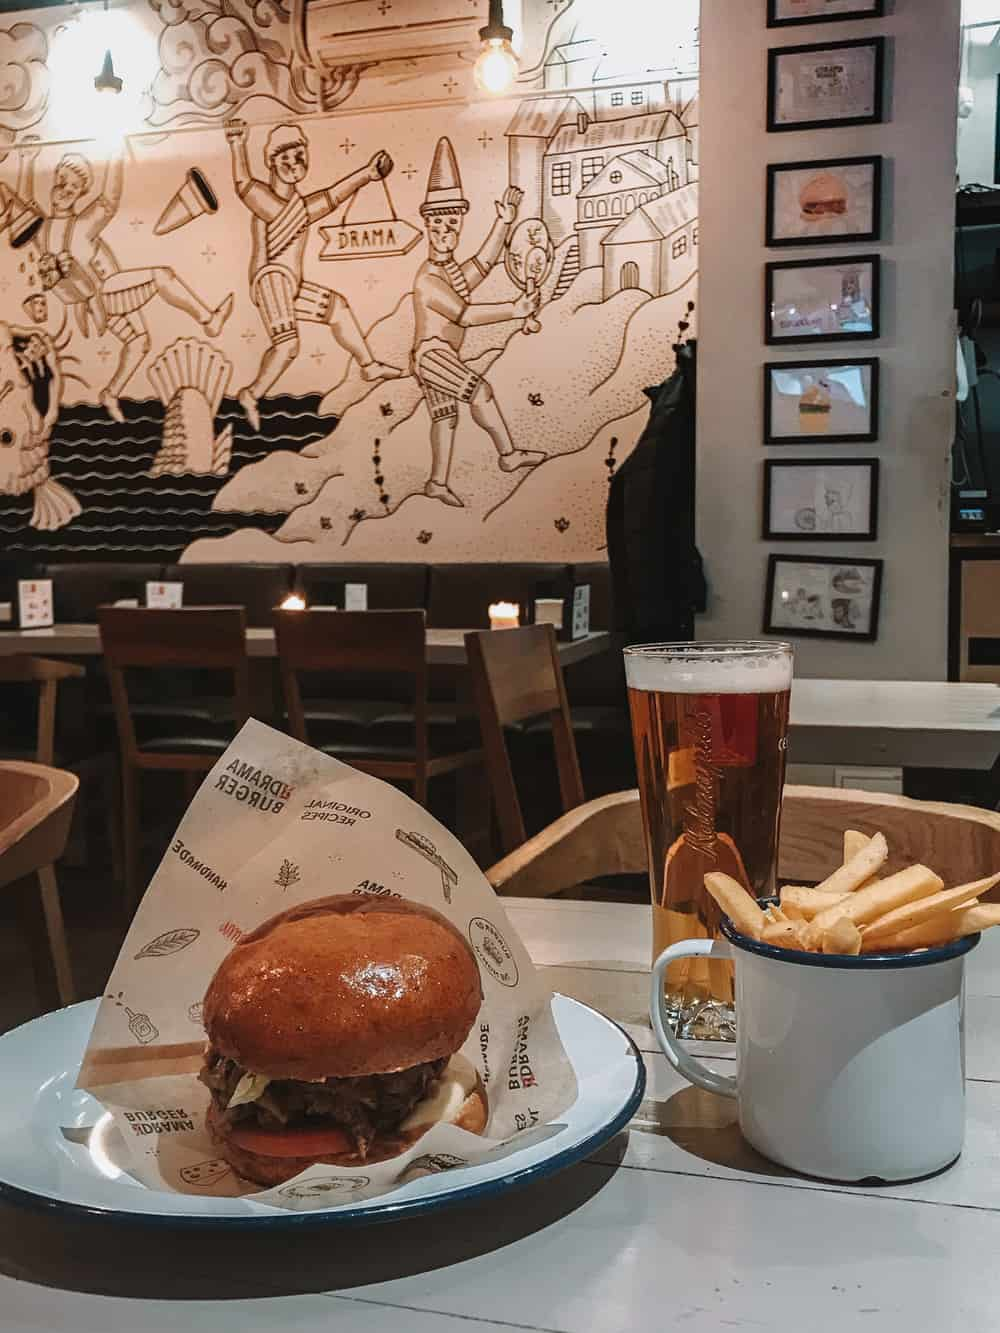 Drama Burger Vilnius | Where to Eat in Vilnius